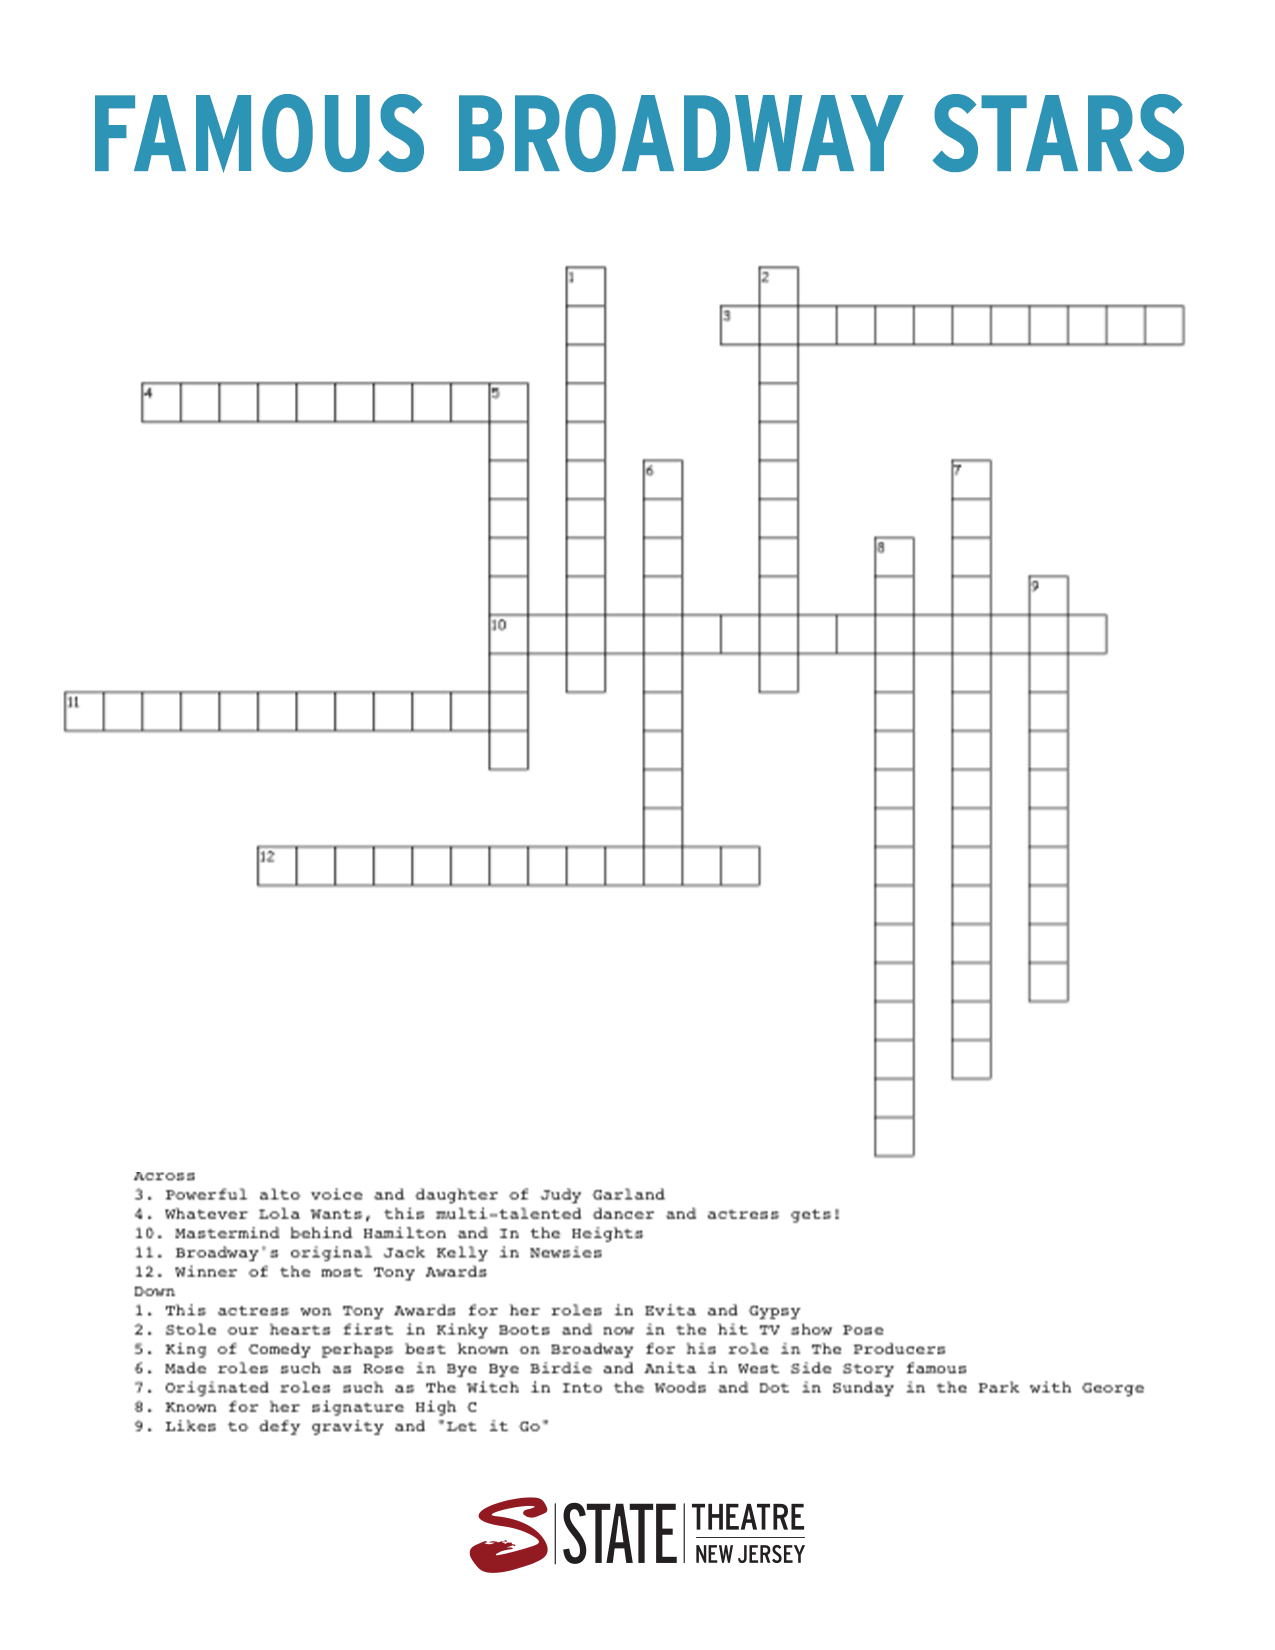 Broadway Stars Crossword